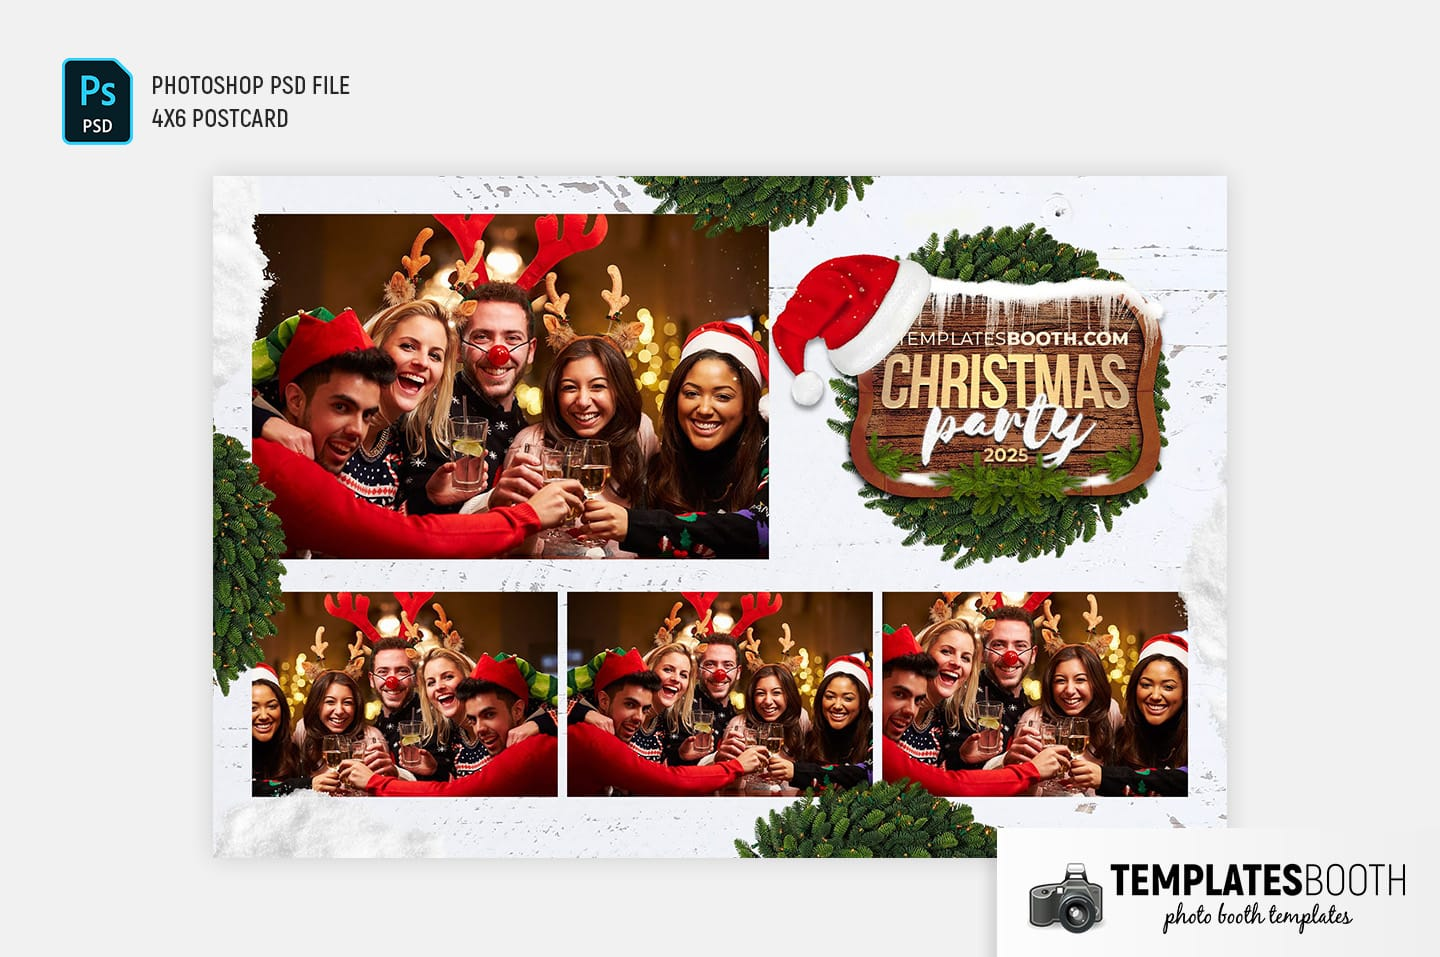 Festive Christmas Photo Booth Template (4x6 postcard landscape)